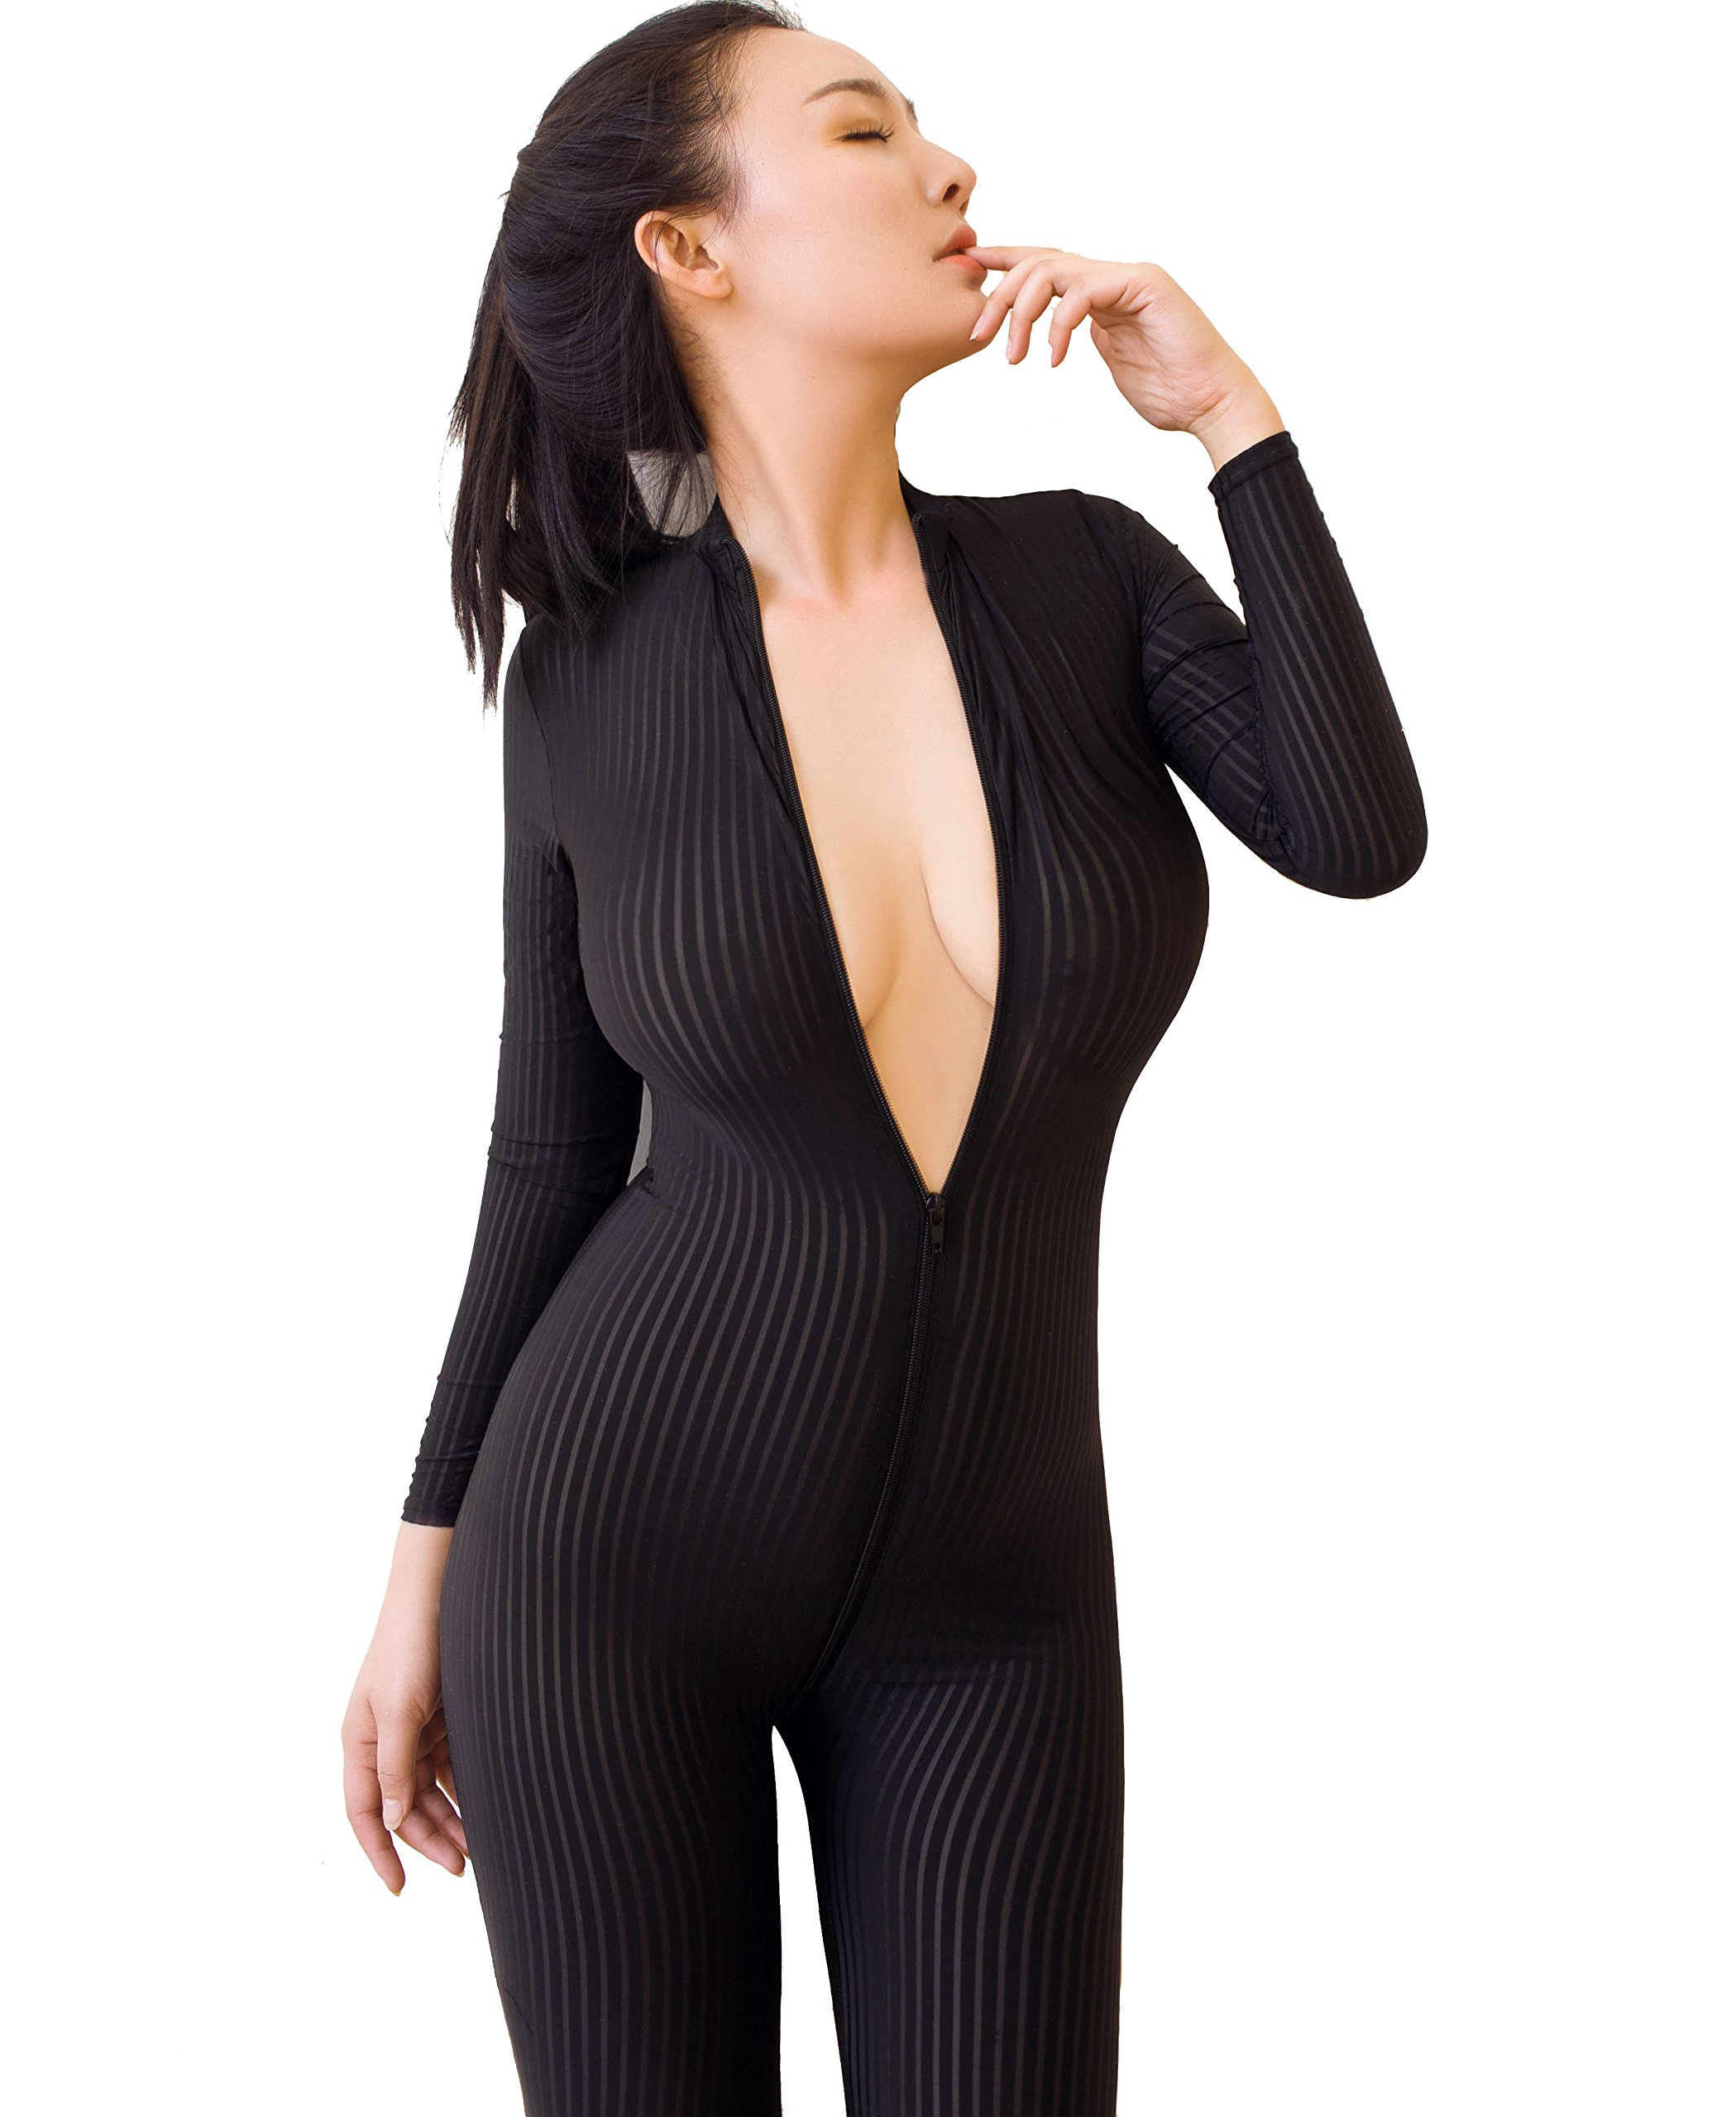 - 81xkvKwrrUL - Opaque Front Zip Vertical Stripes Spandex